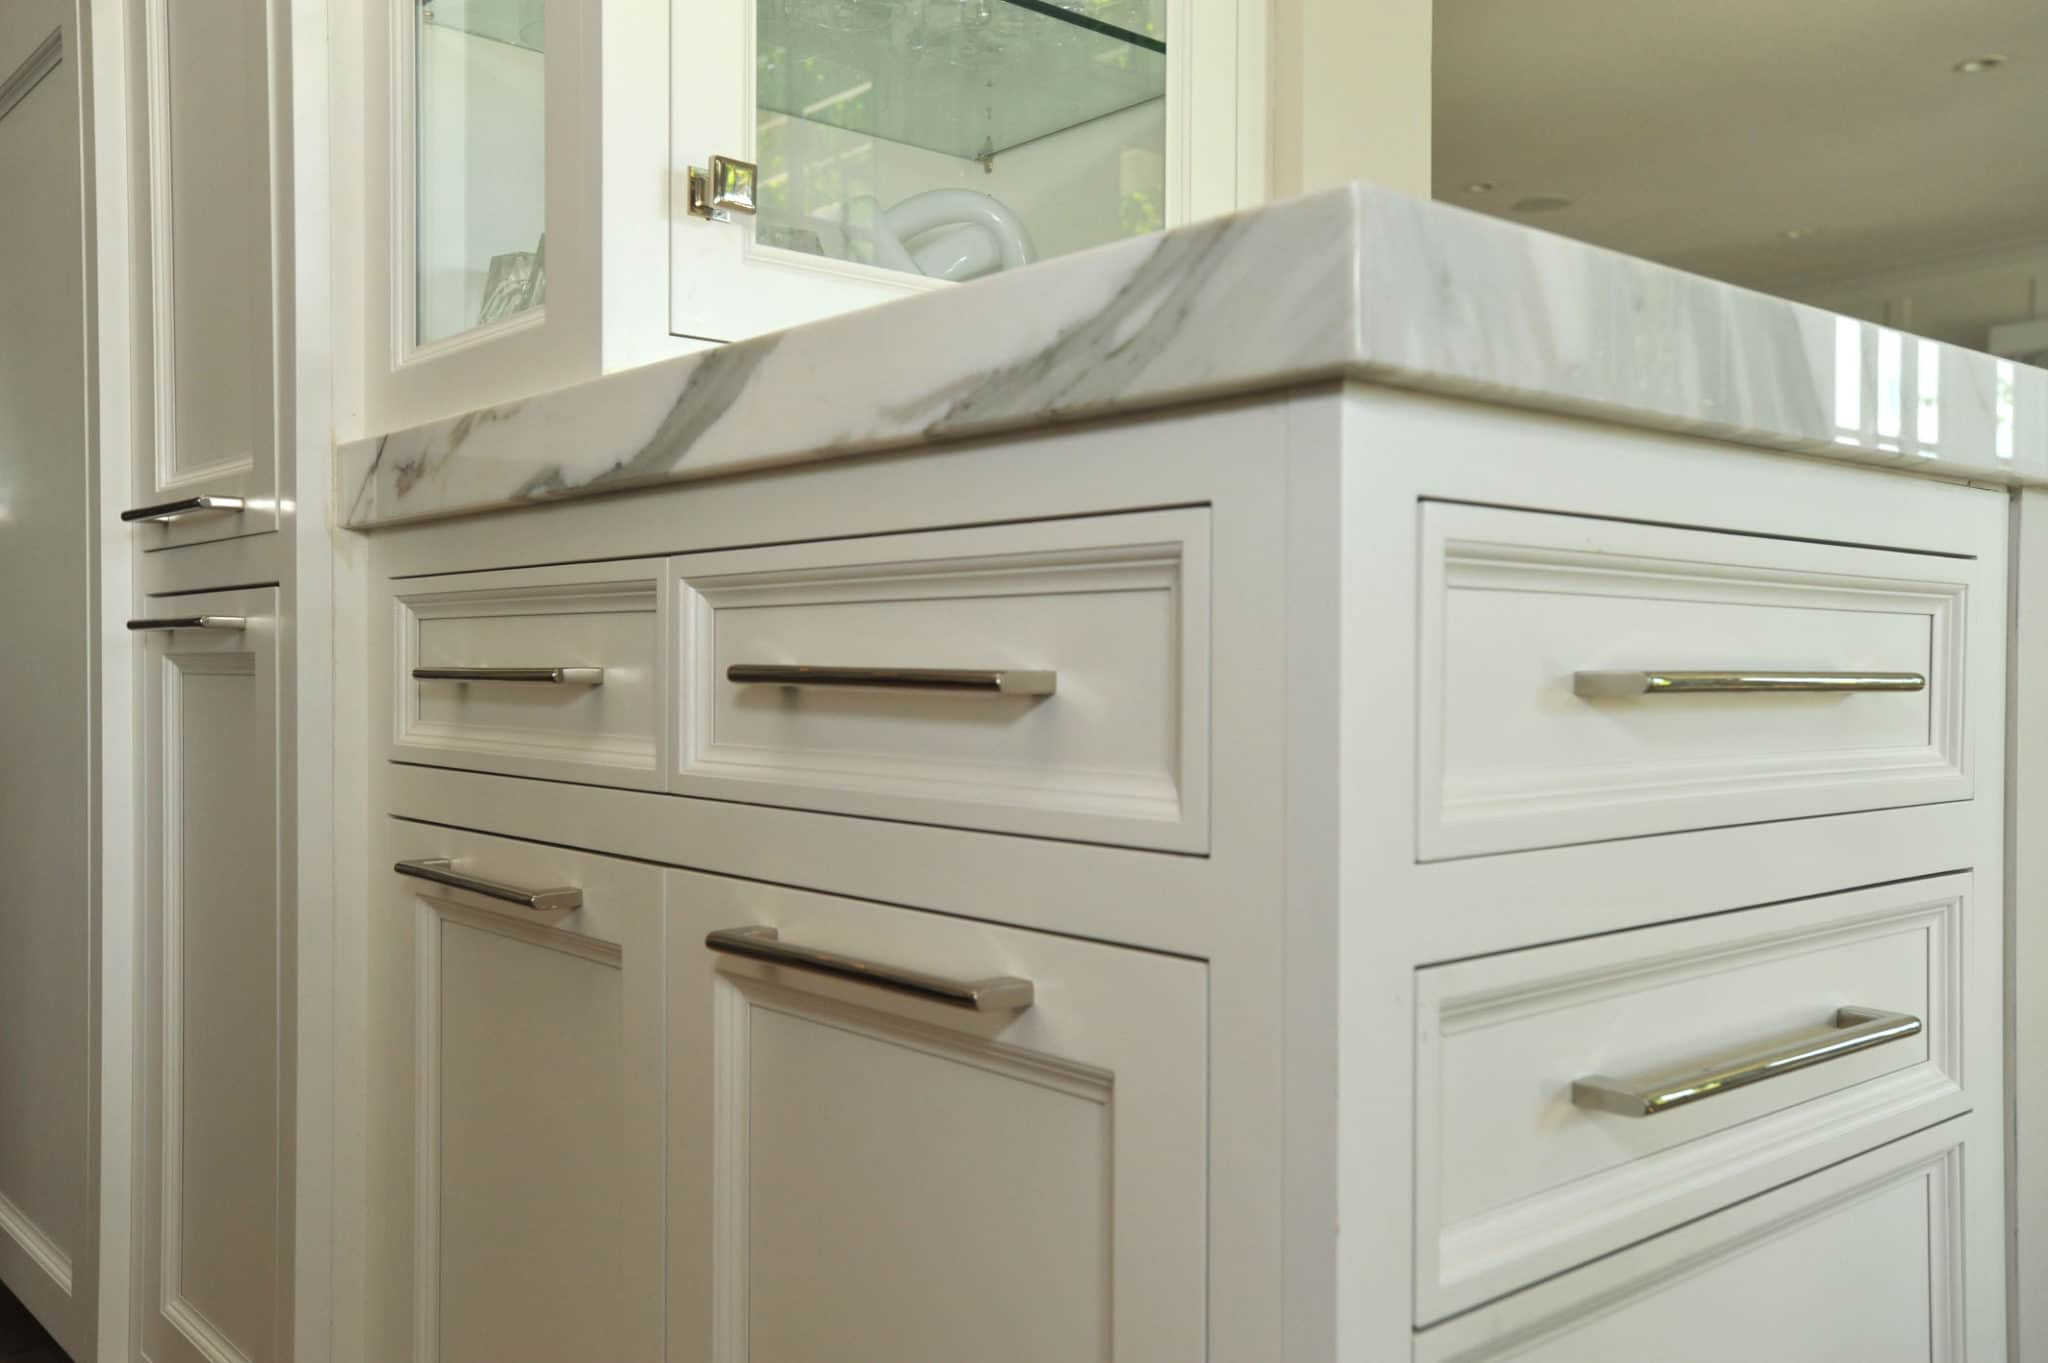 Remodel Bathrooms Ideas Cabinet Hardware Metropolitan Cabinets